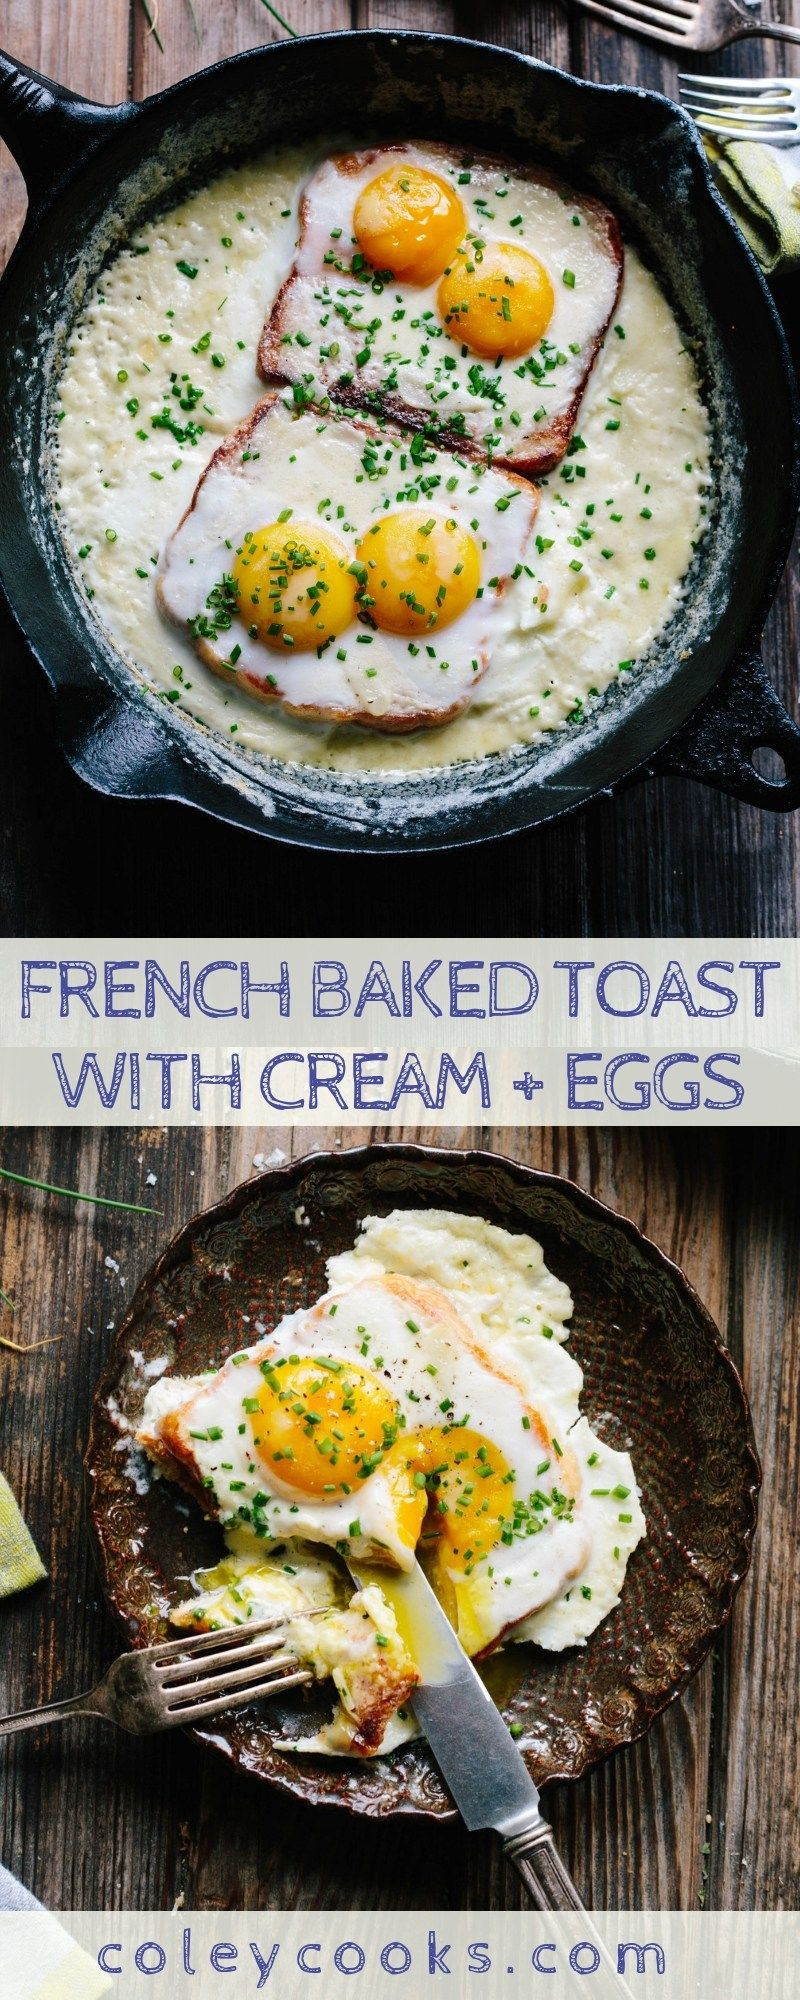 French Baked Toast With Cream And Eggs